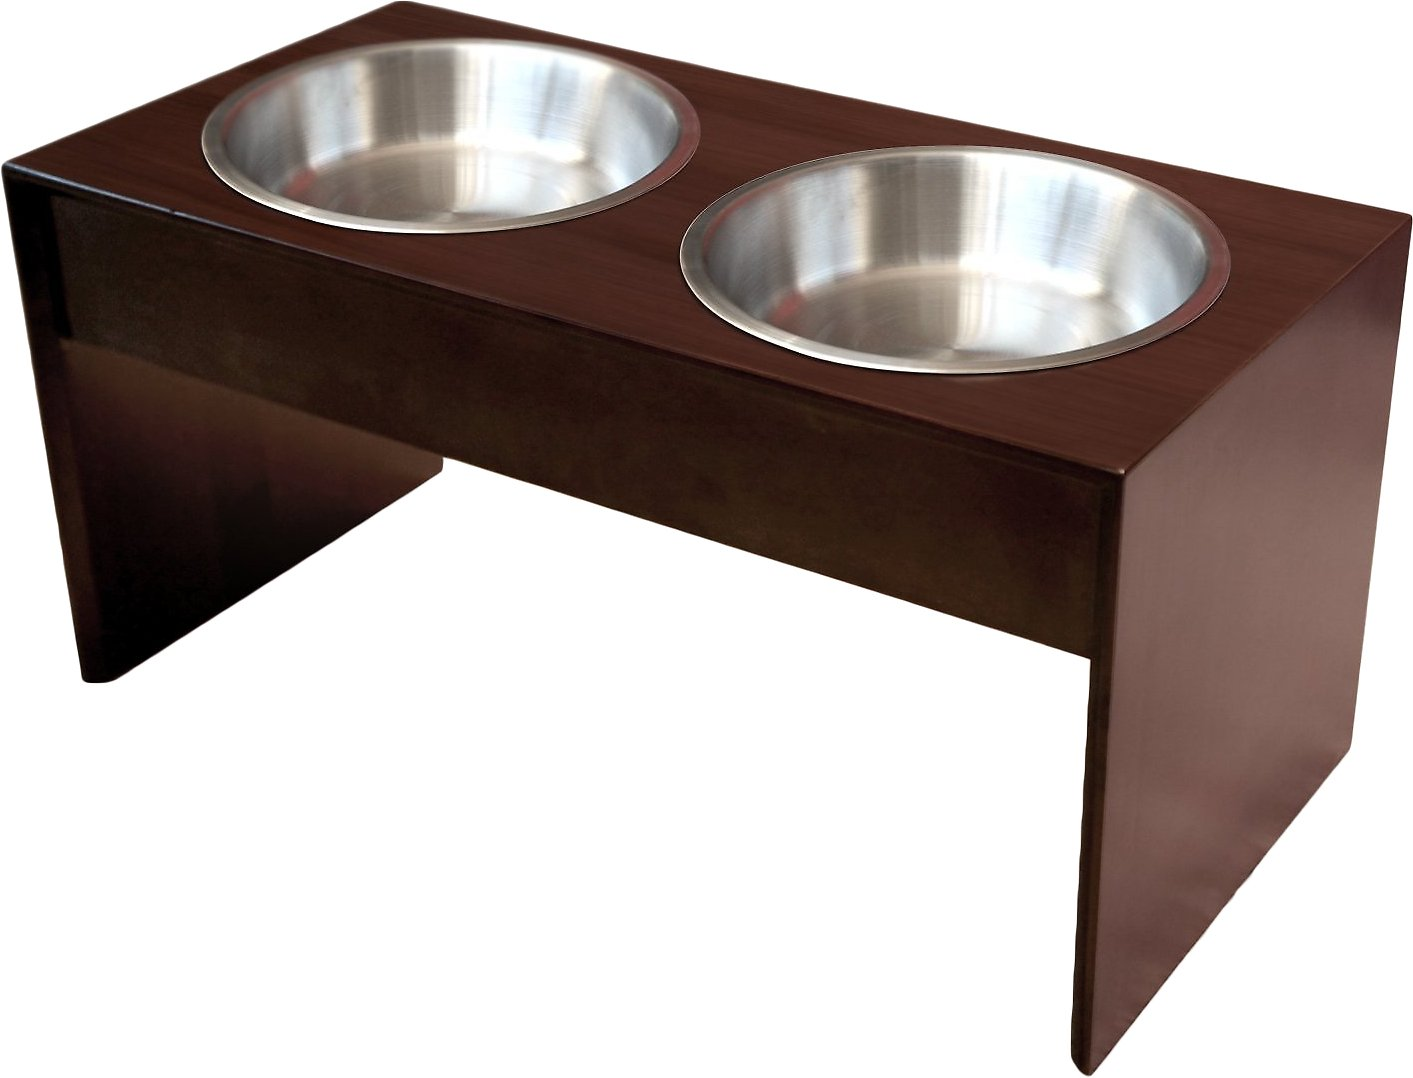 Charming Elevated Dog Bowls for Best Dog Bowl Ideas: Elevated Dog Bowls | Dog Waterers | Food Dispenser For Dogs